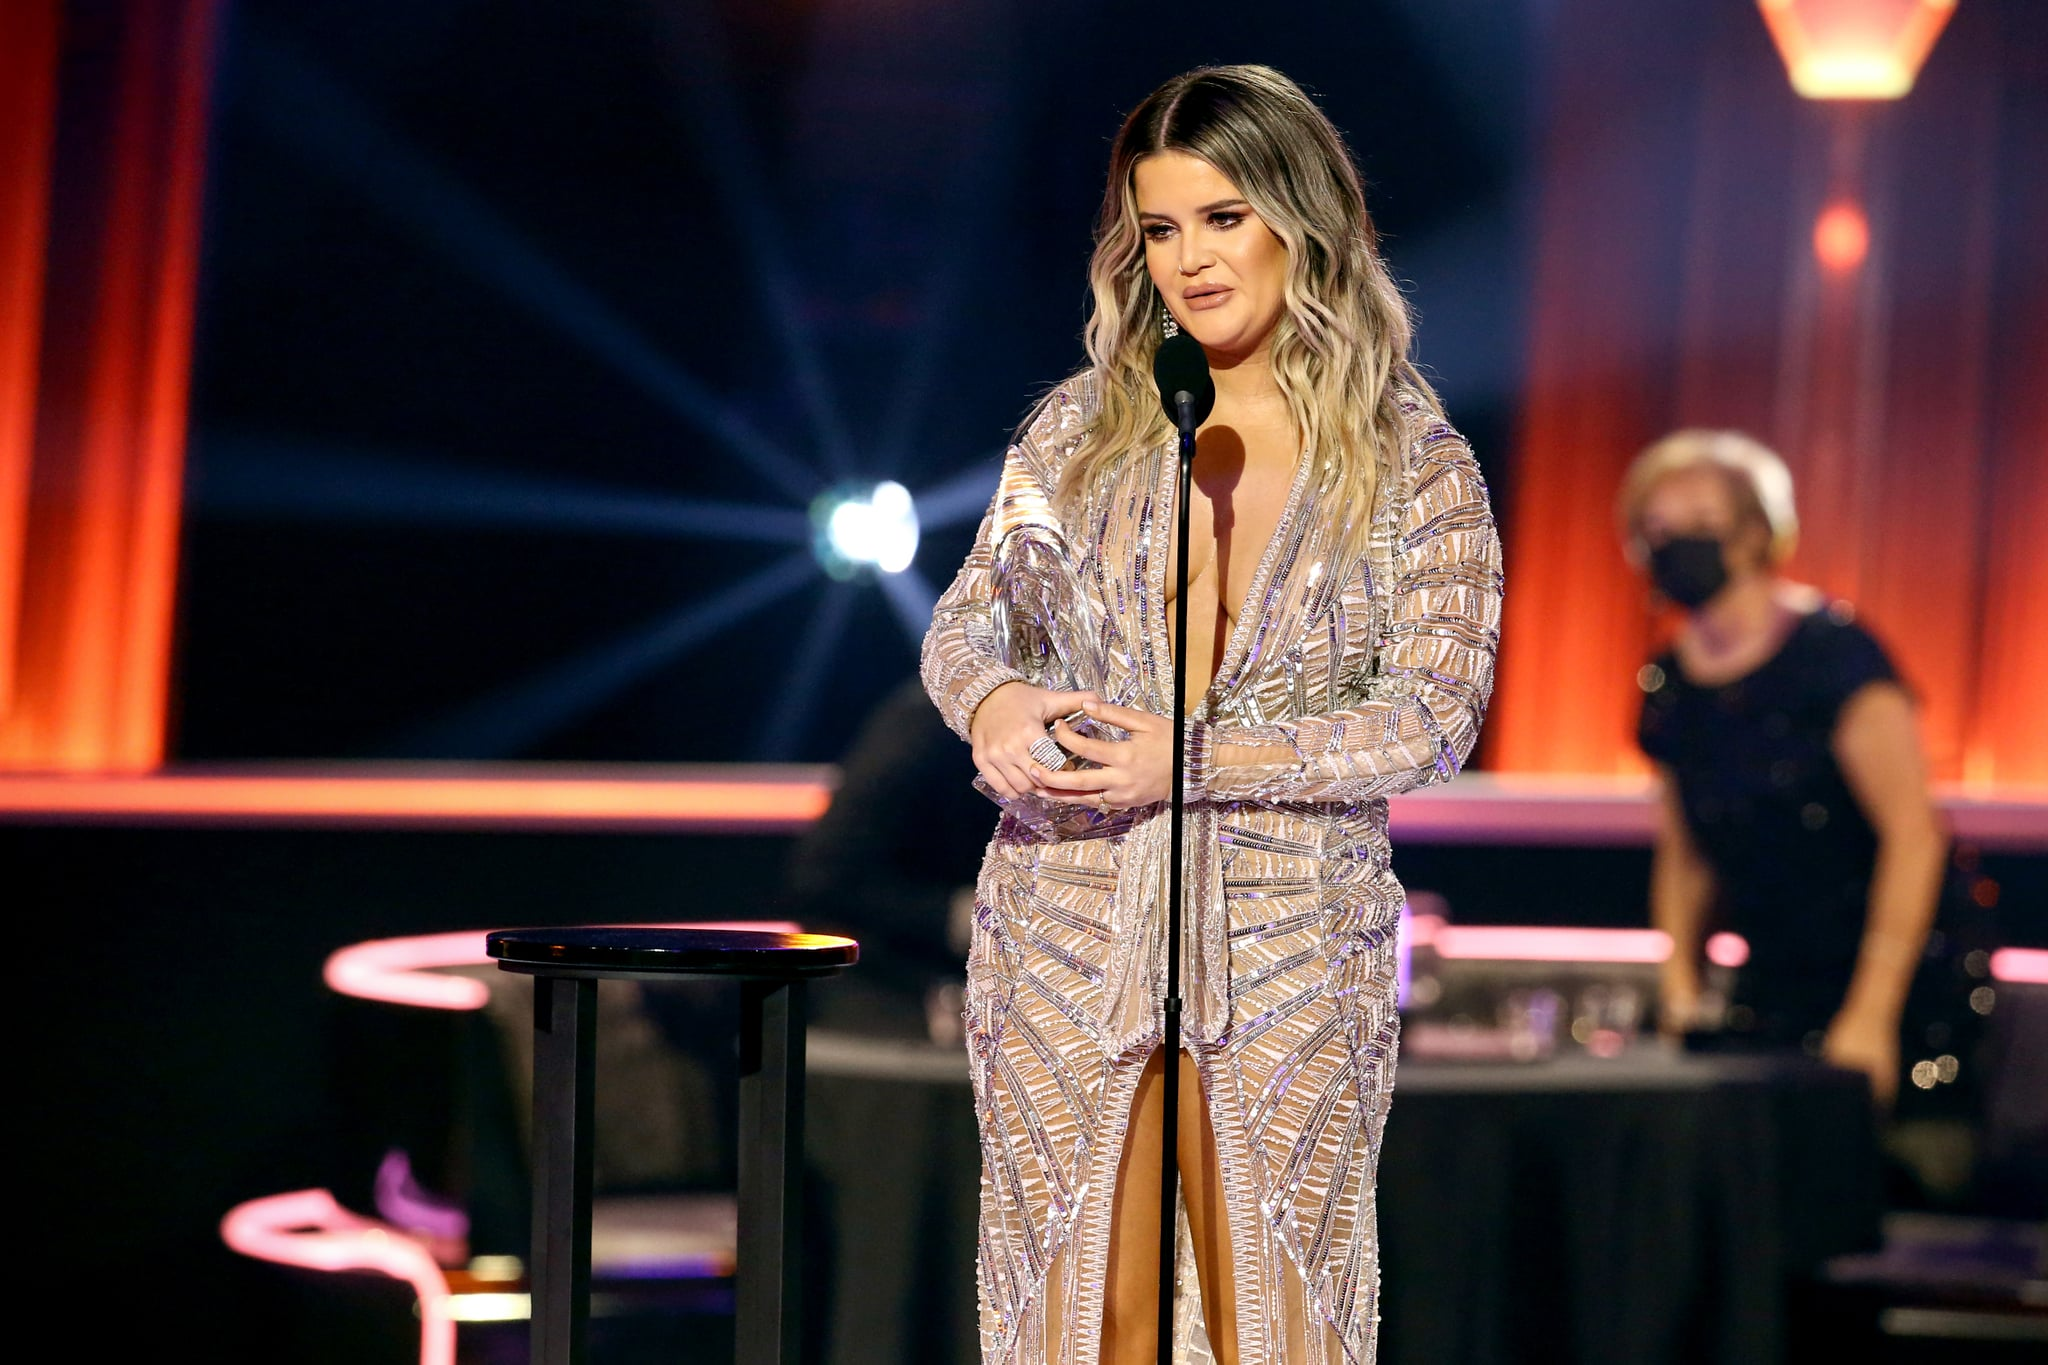 NASHVILLE, TENNESSEE - NOVEMBER 11: (FOR EDITORIAL USE ONLY) Maren Morris accepts an award onstage during the The 54th Annual CMA Awards at Nashville's Music City Centre on Wednesday, November 11, 2020 in Nashville, Tennessee.  (Photo by Terry Wyatt/Getty Images for CMA)